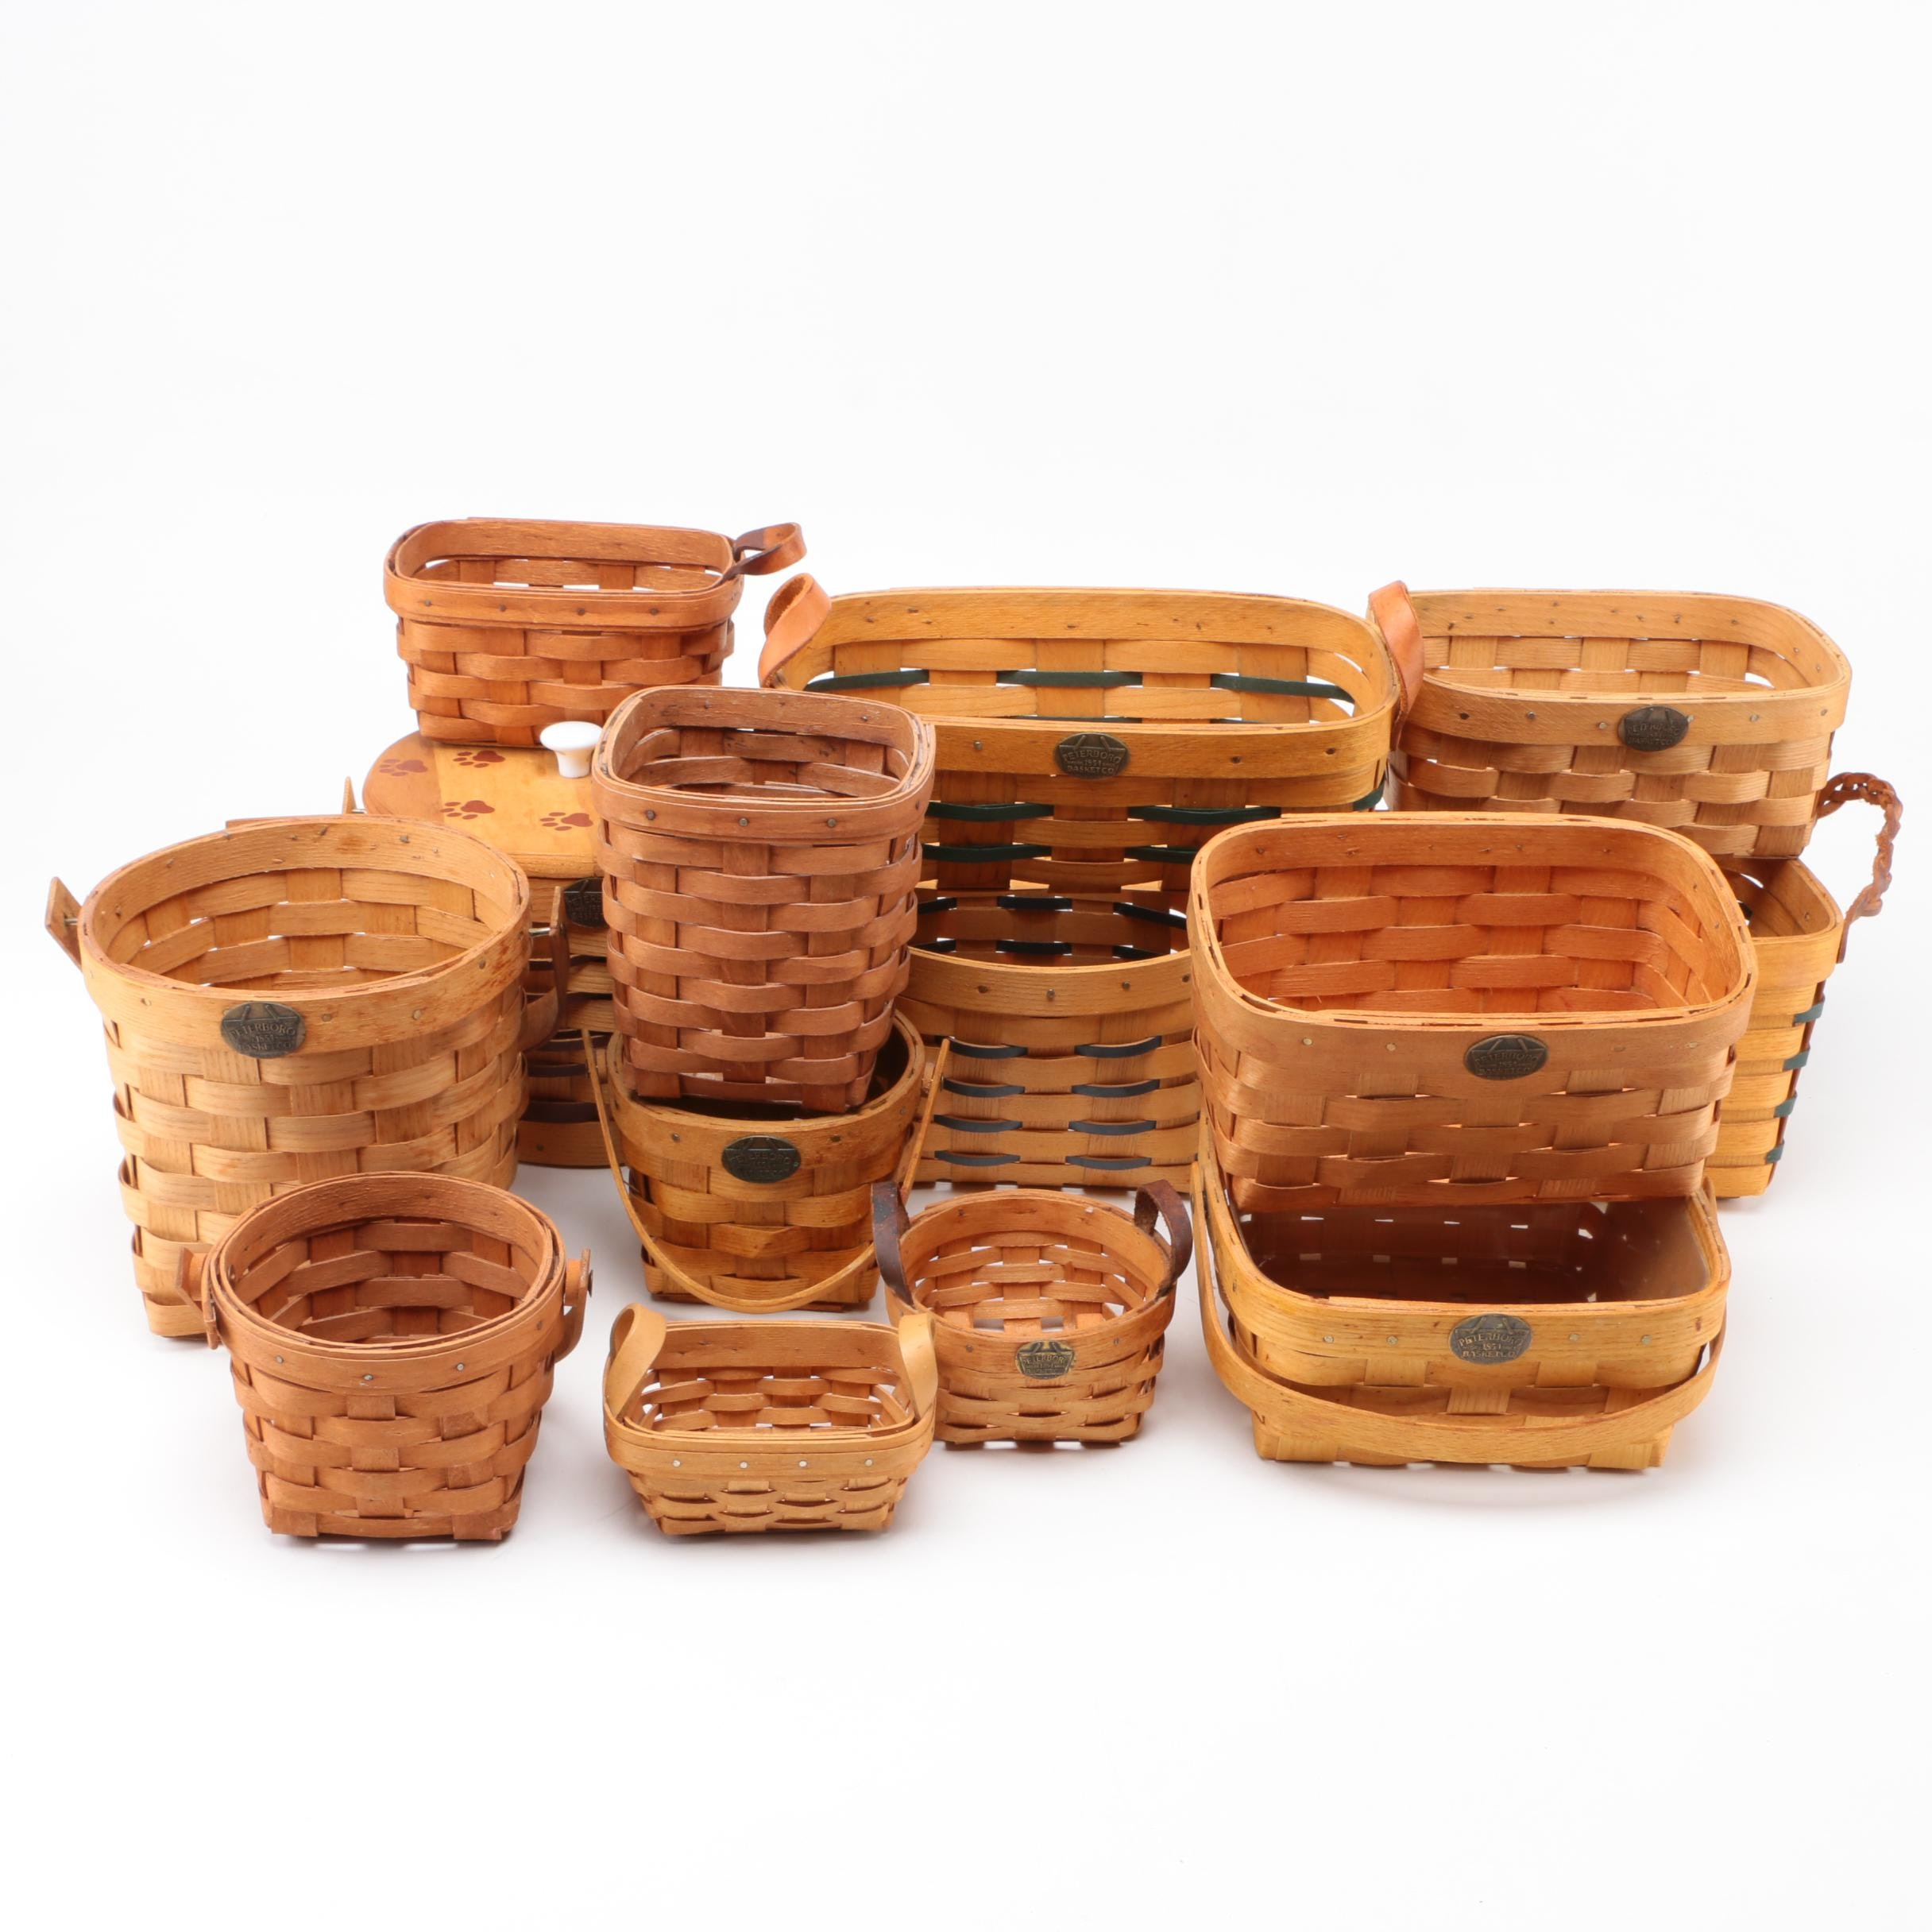 Assortment of Hand Woven Baskets